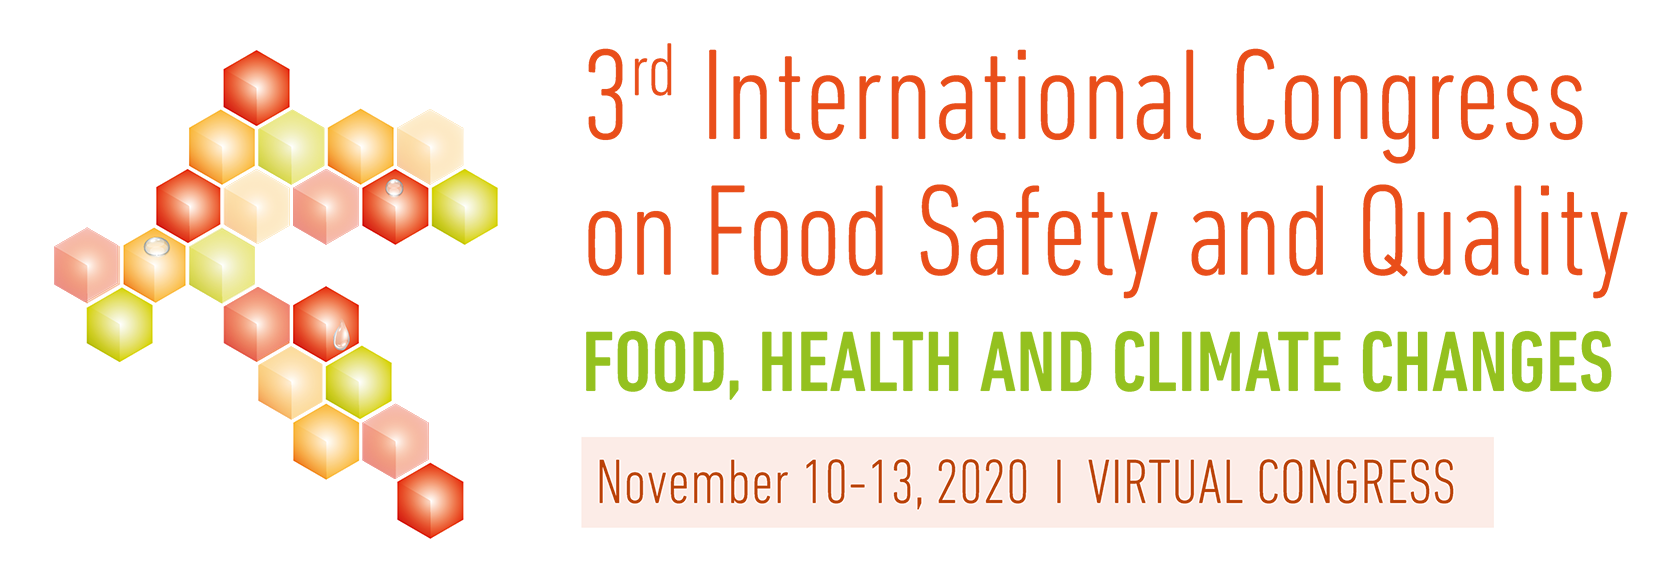 FoodCon2020 banner